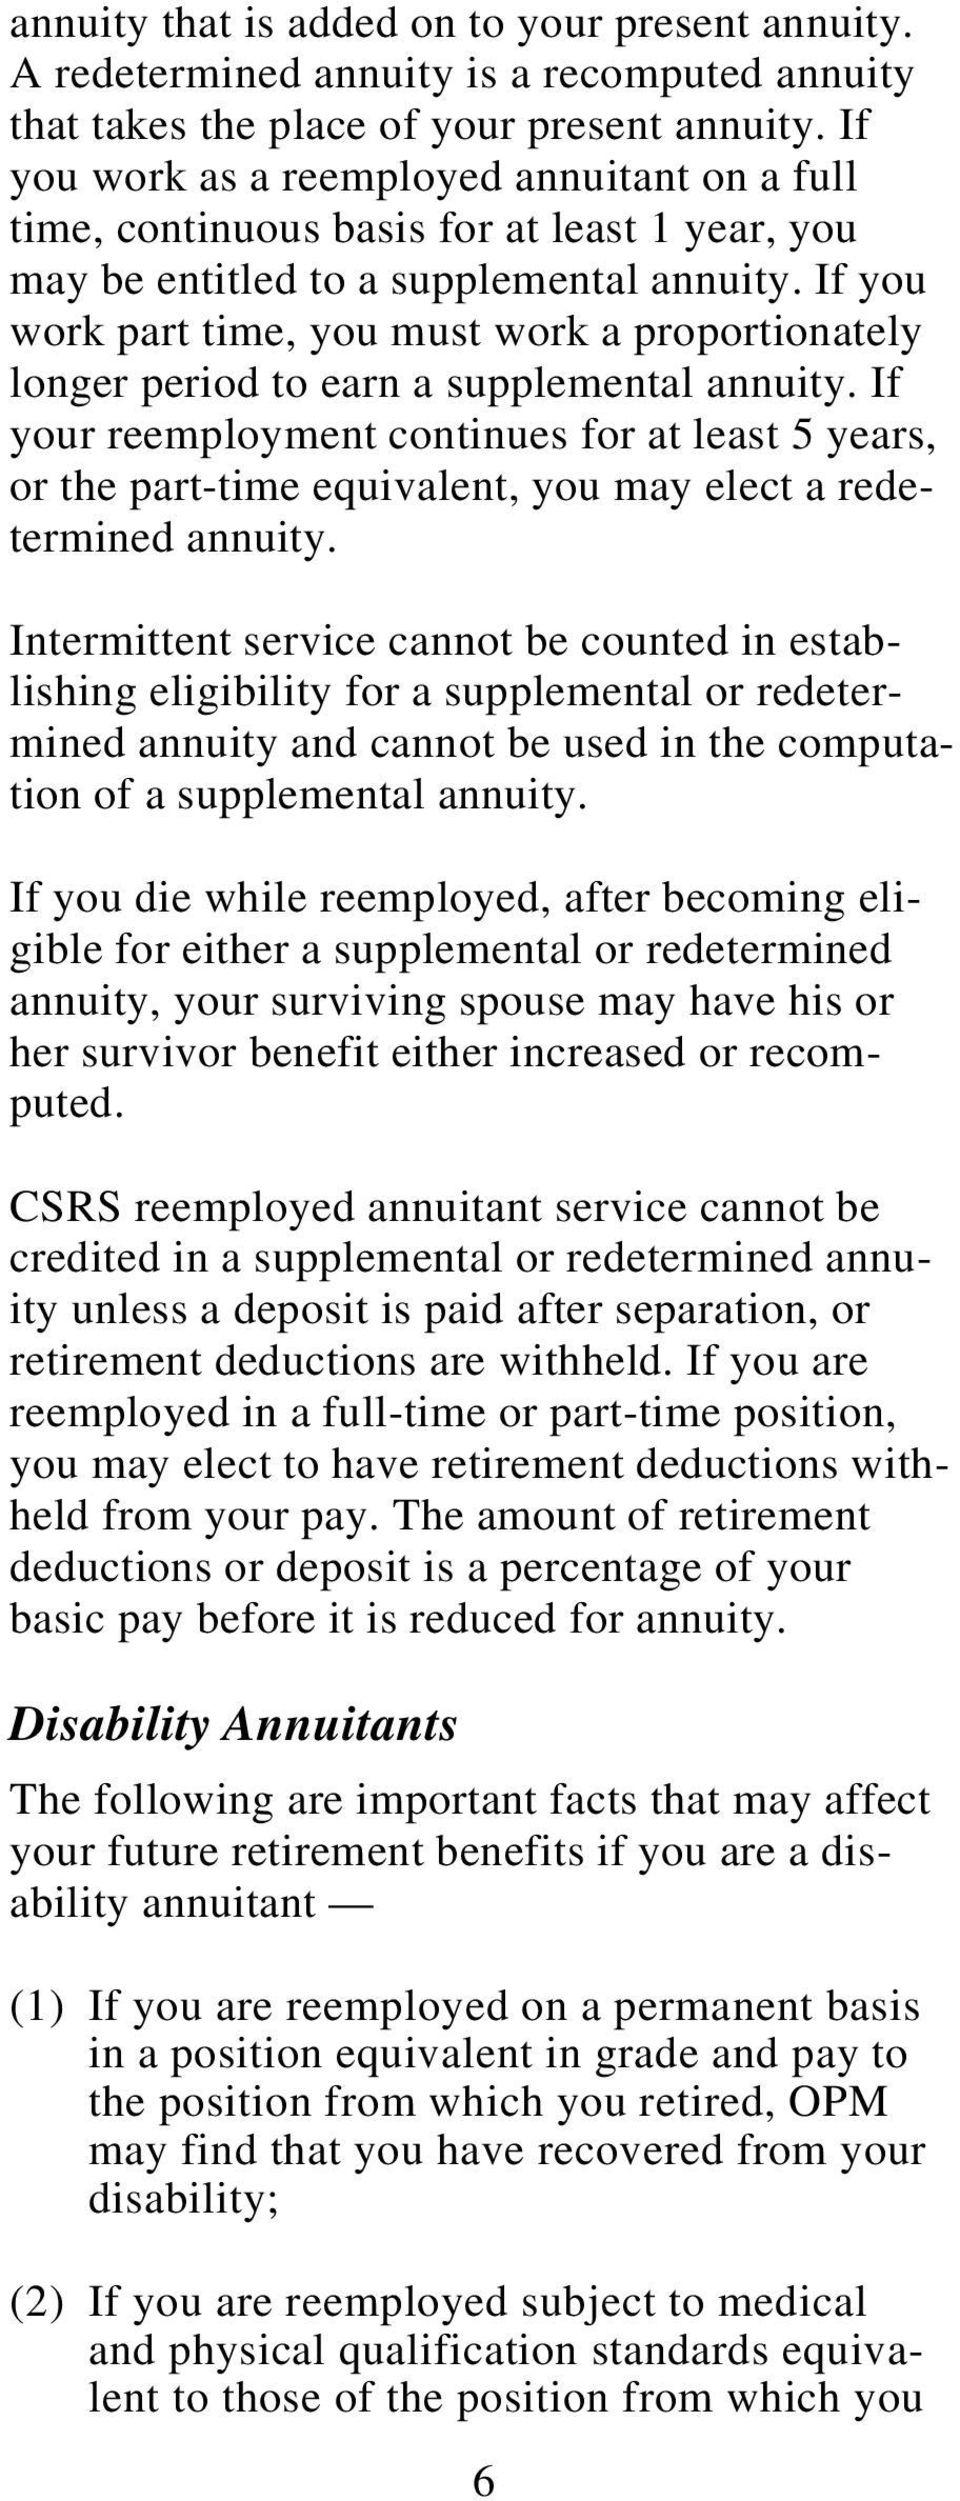 If you work part time, you must work a proportionately longer period to earn a supplemental annuity.